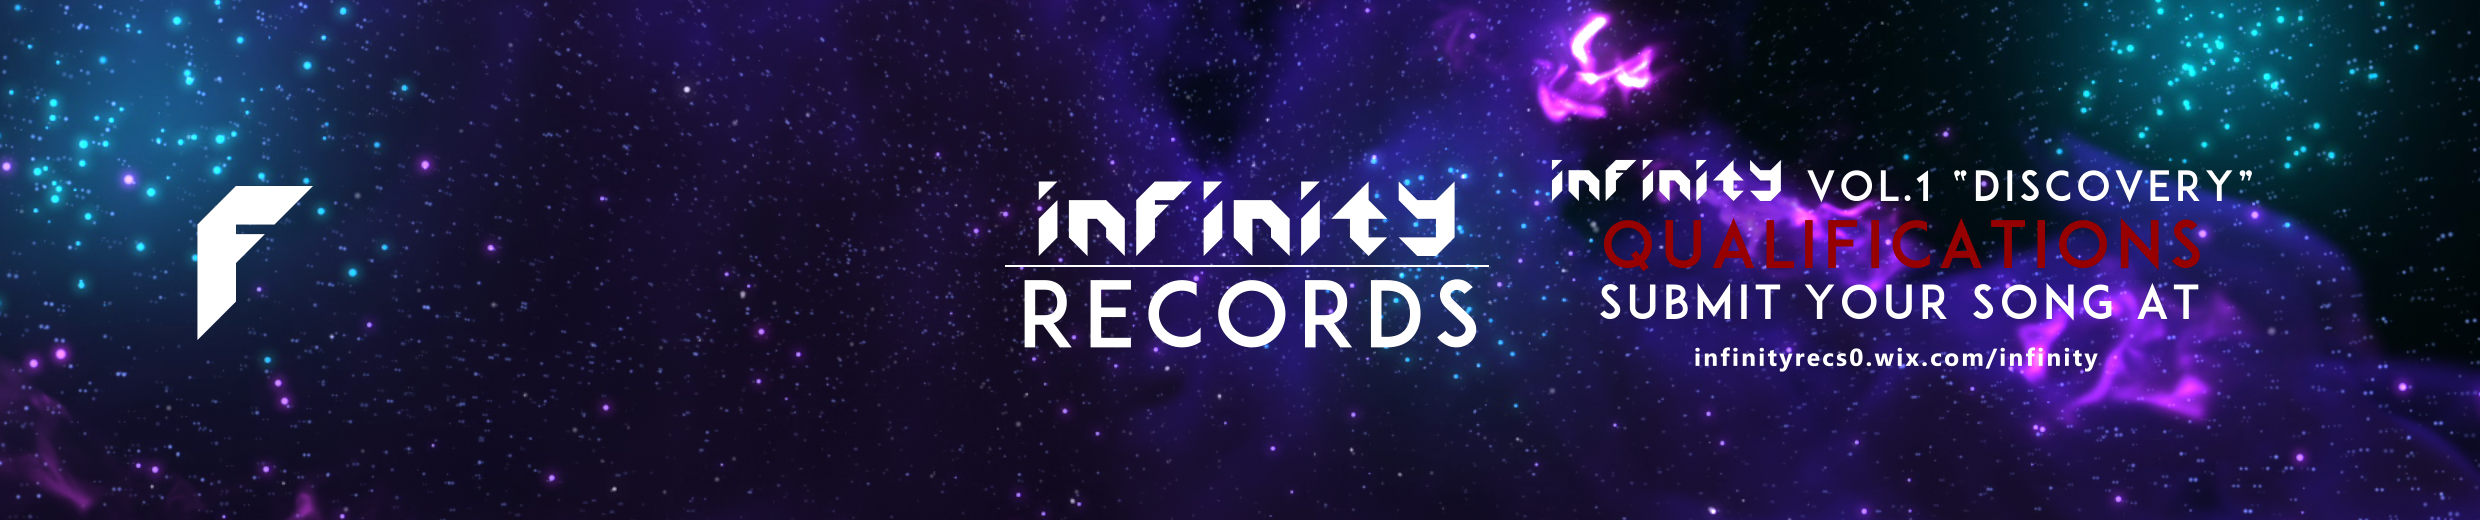 InFinity Records SoundCloud Banner